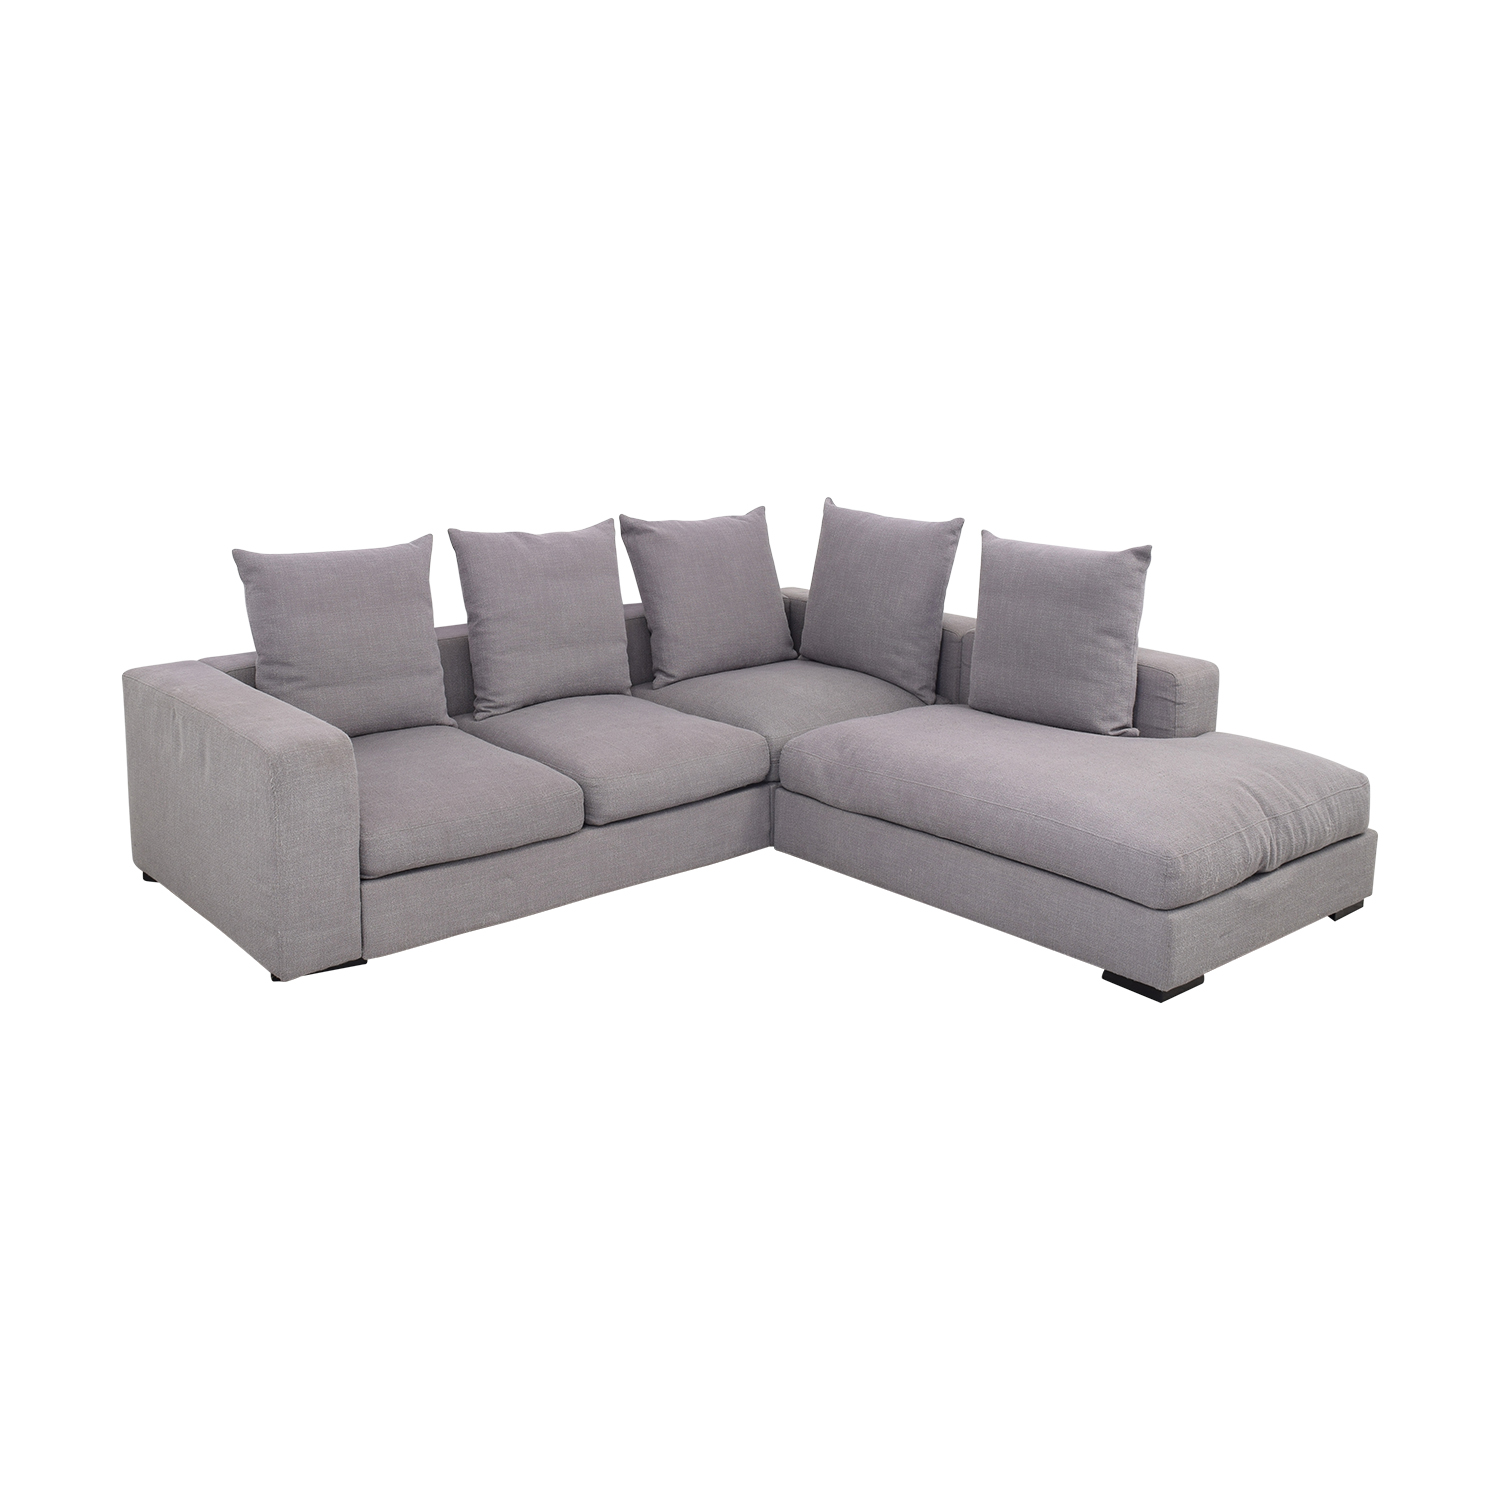 Sofa Boconcept 79% Off - Boconcept Boconcept Cenova Sofa With Lounging ...